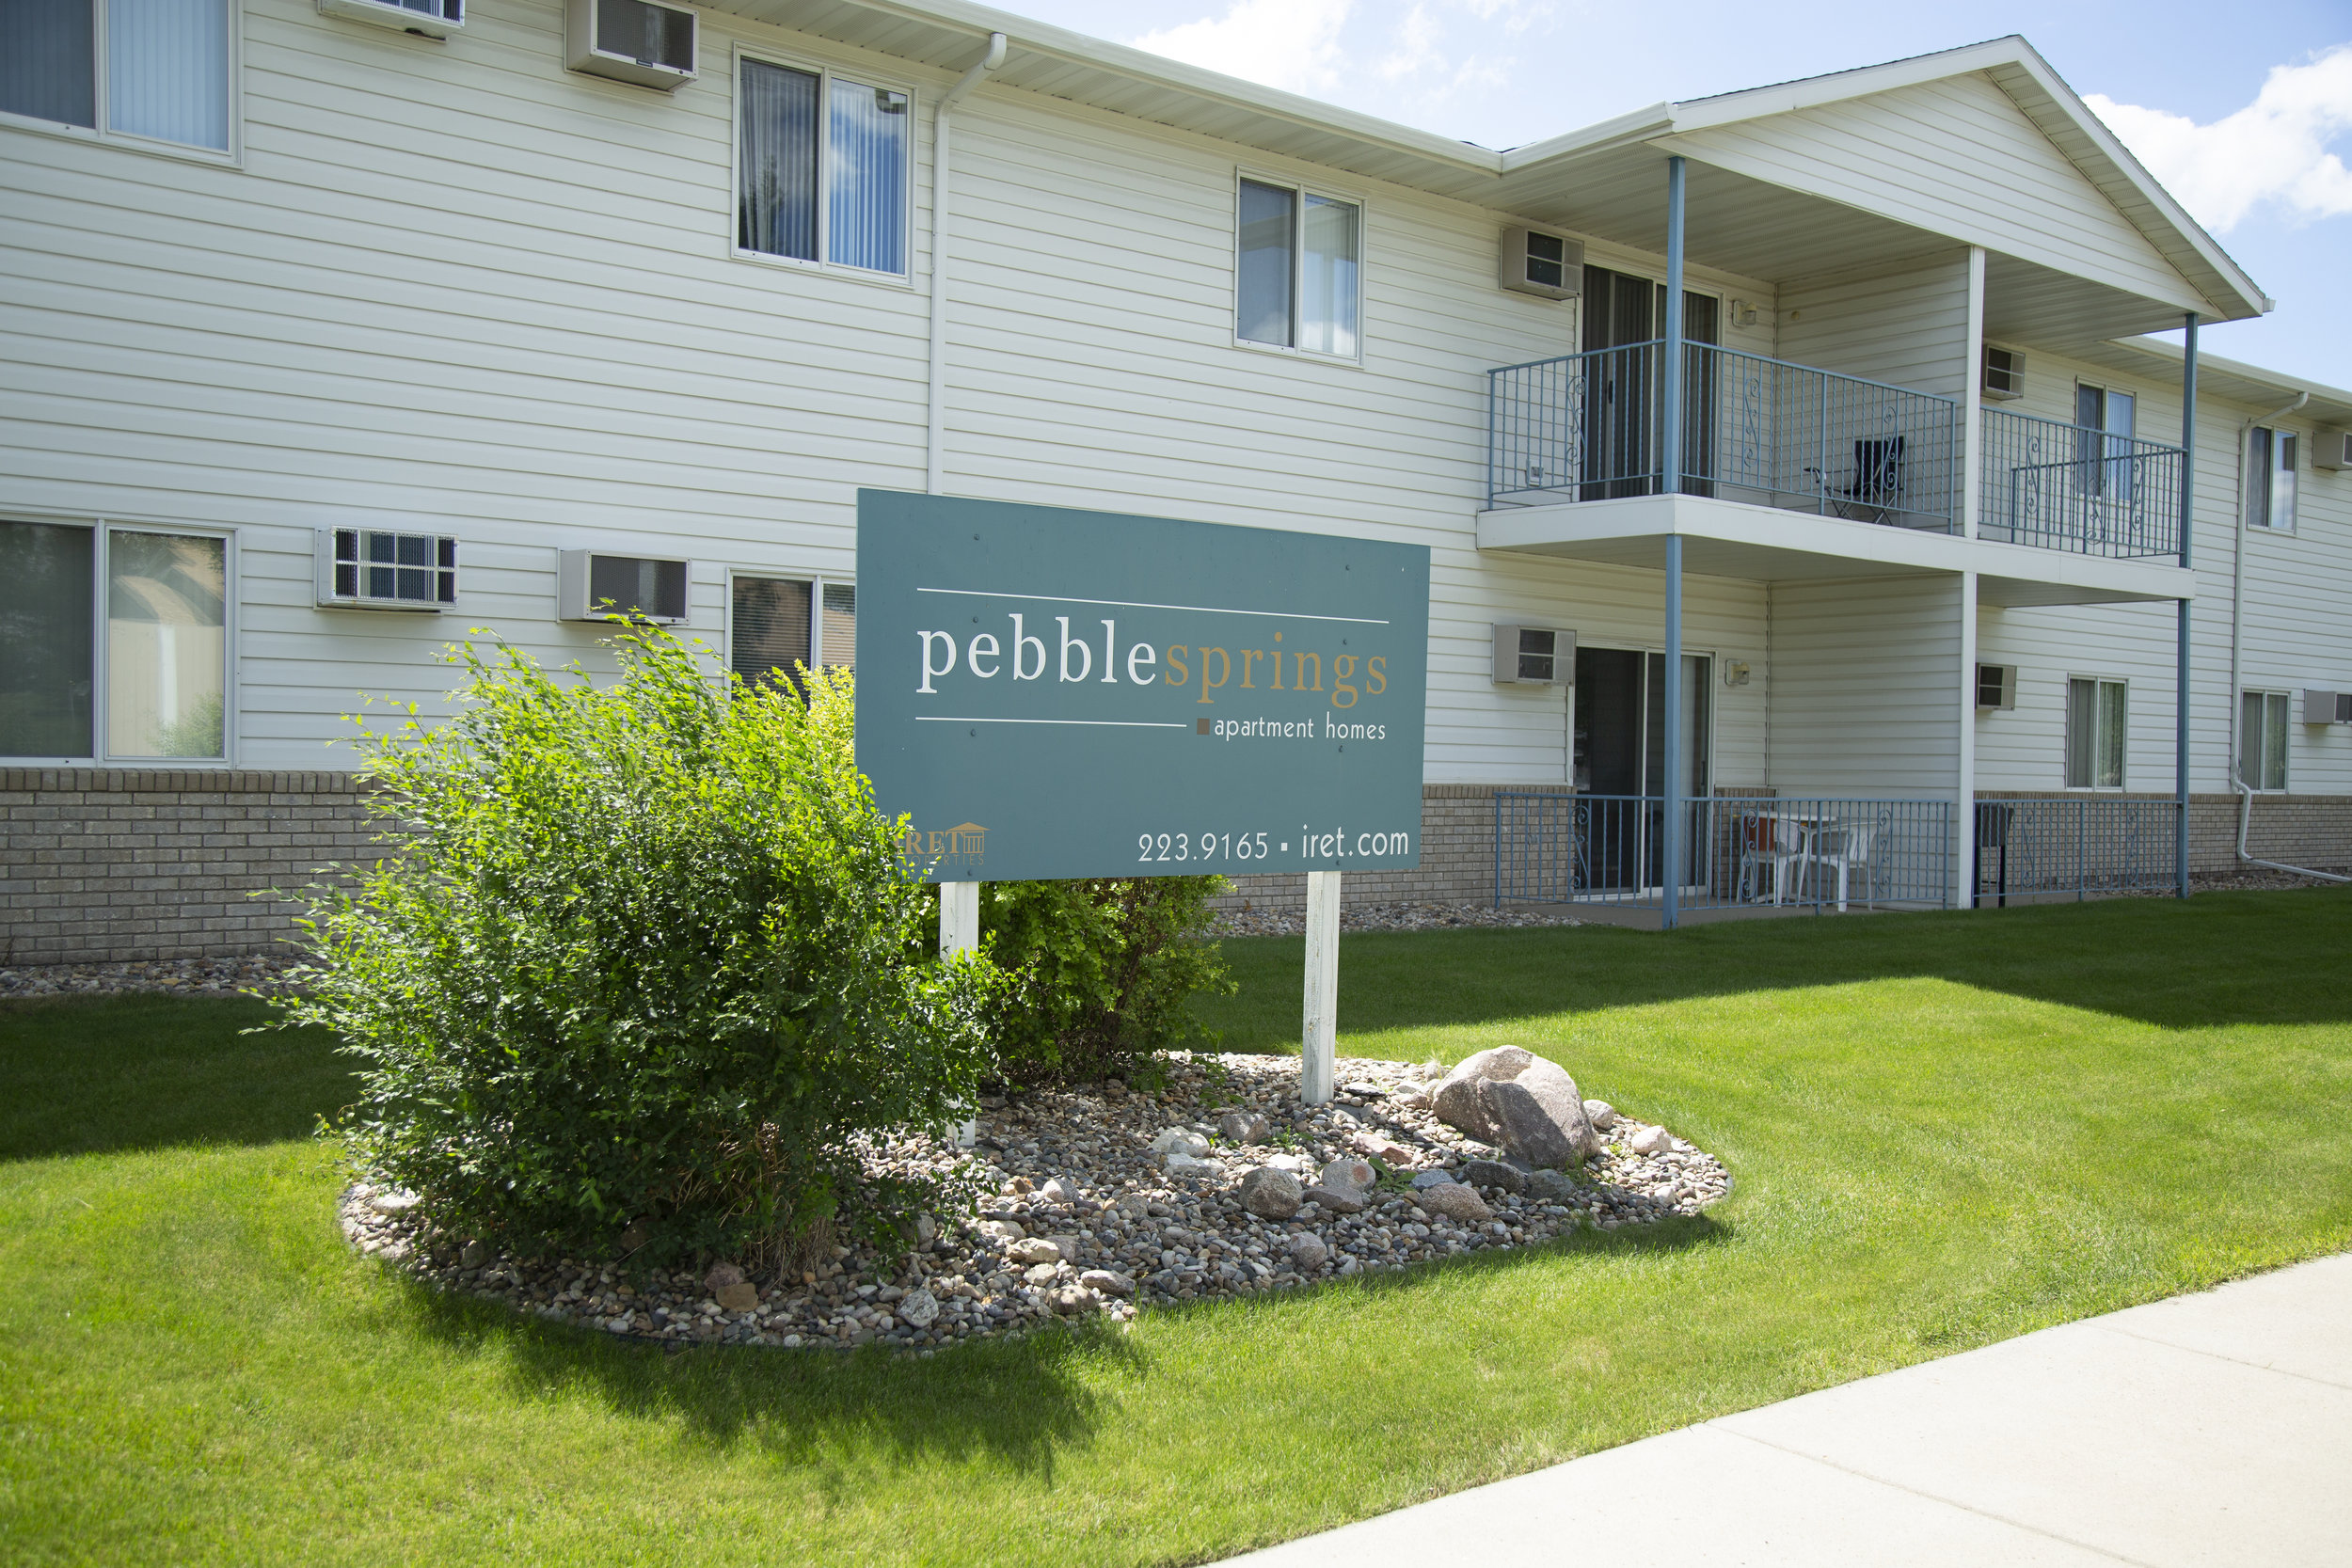 Welcome to Pebble Springs Apartments!